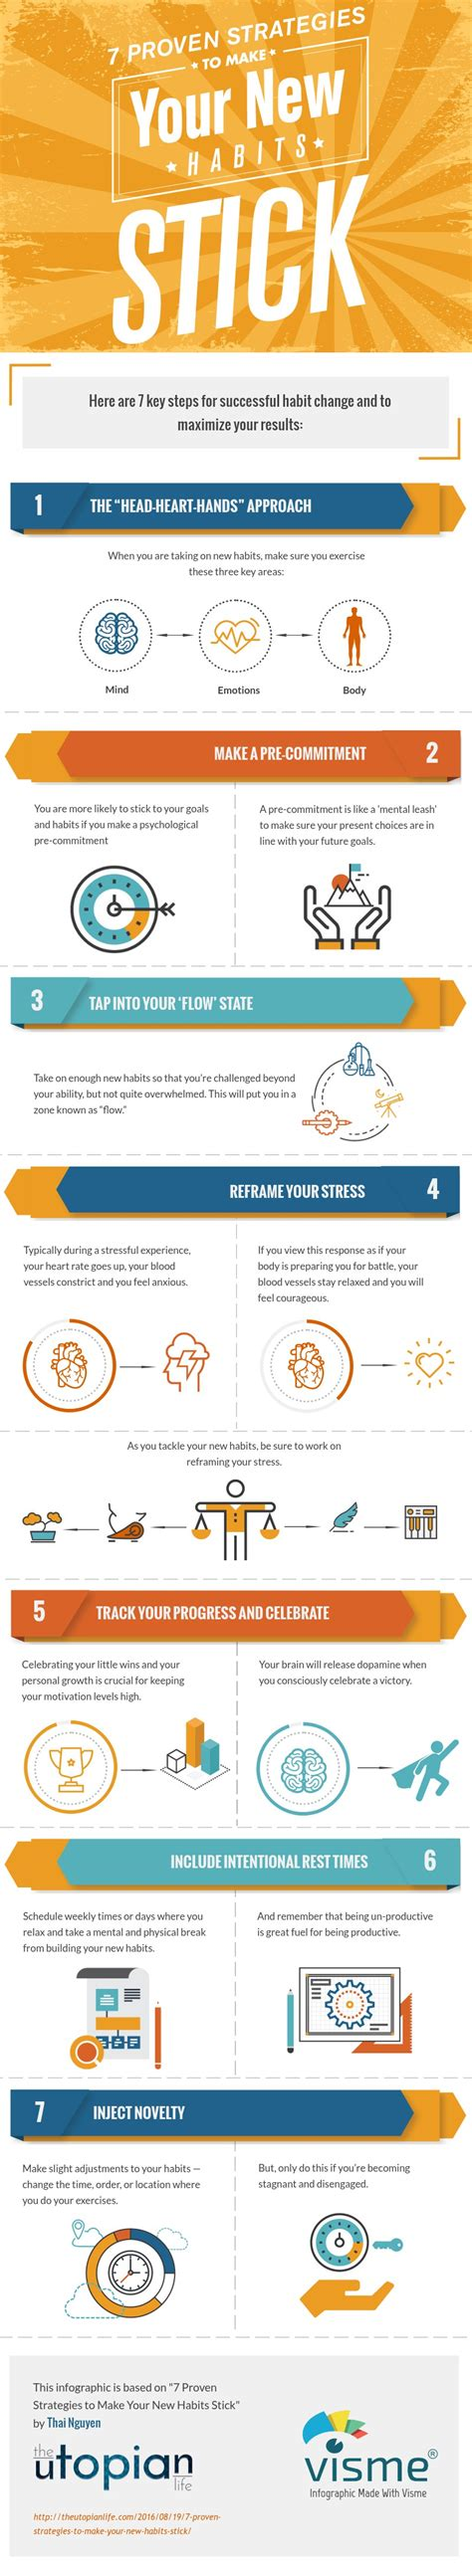 Infographic 24 Daily Habits That Will Make You Smarter Designtaxi Make New Habits Stick Infographic Self Help Daily